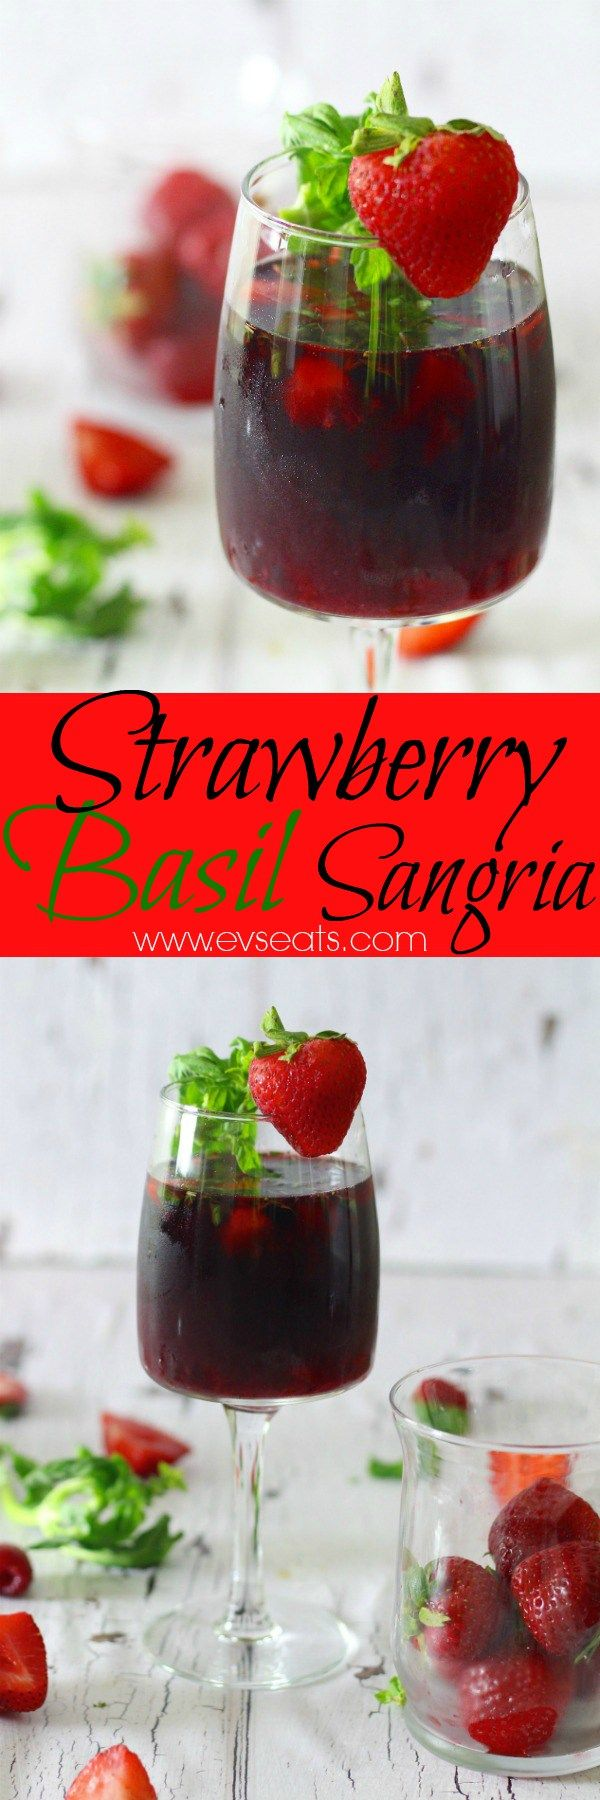 This Strawberry Basil Sangria takes the strawberry and basil combination to the next level! Perfect drink to accompany all your grilling recipes this summer. Check out www.evseats,com for more cocktail recipes.